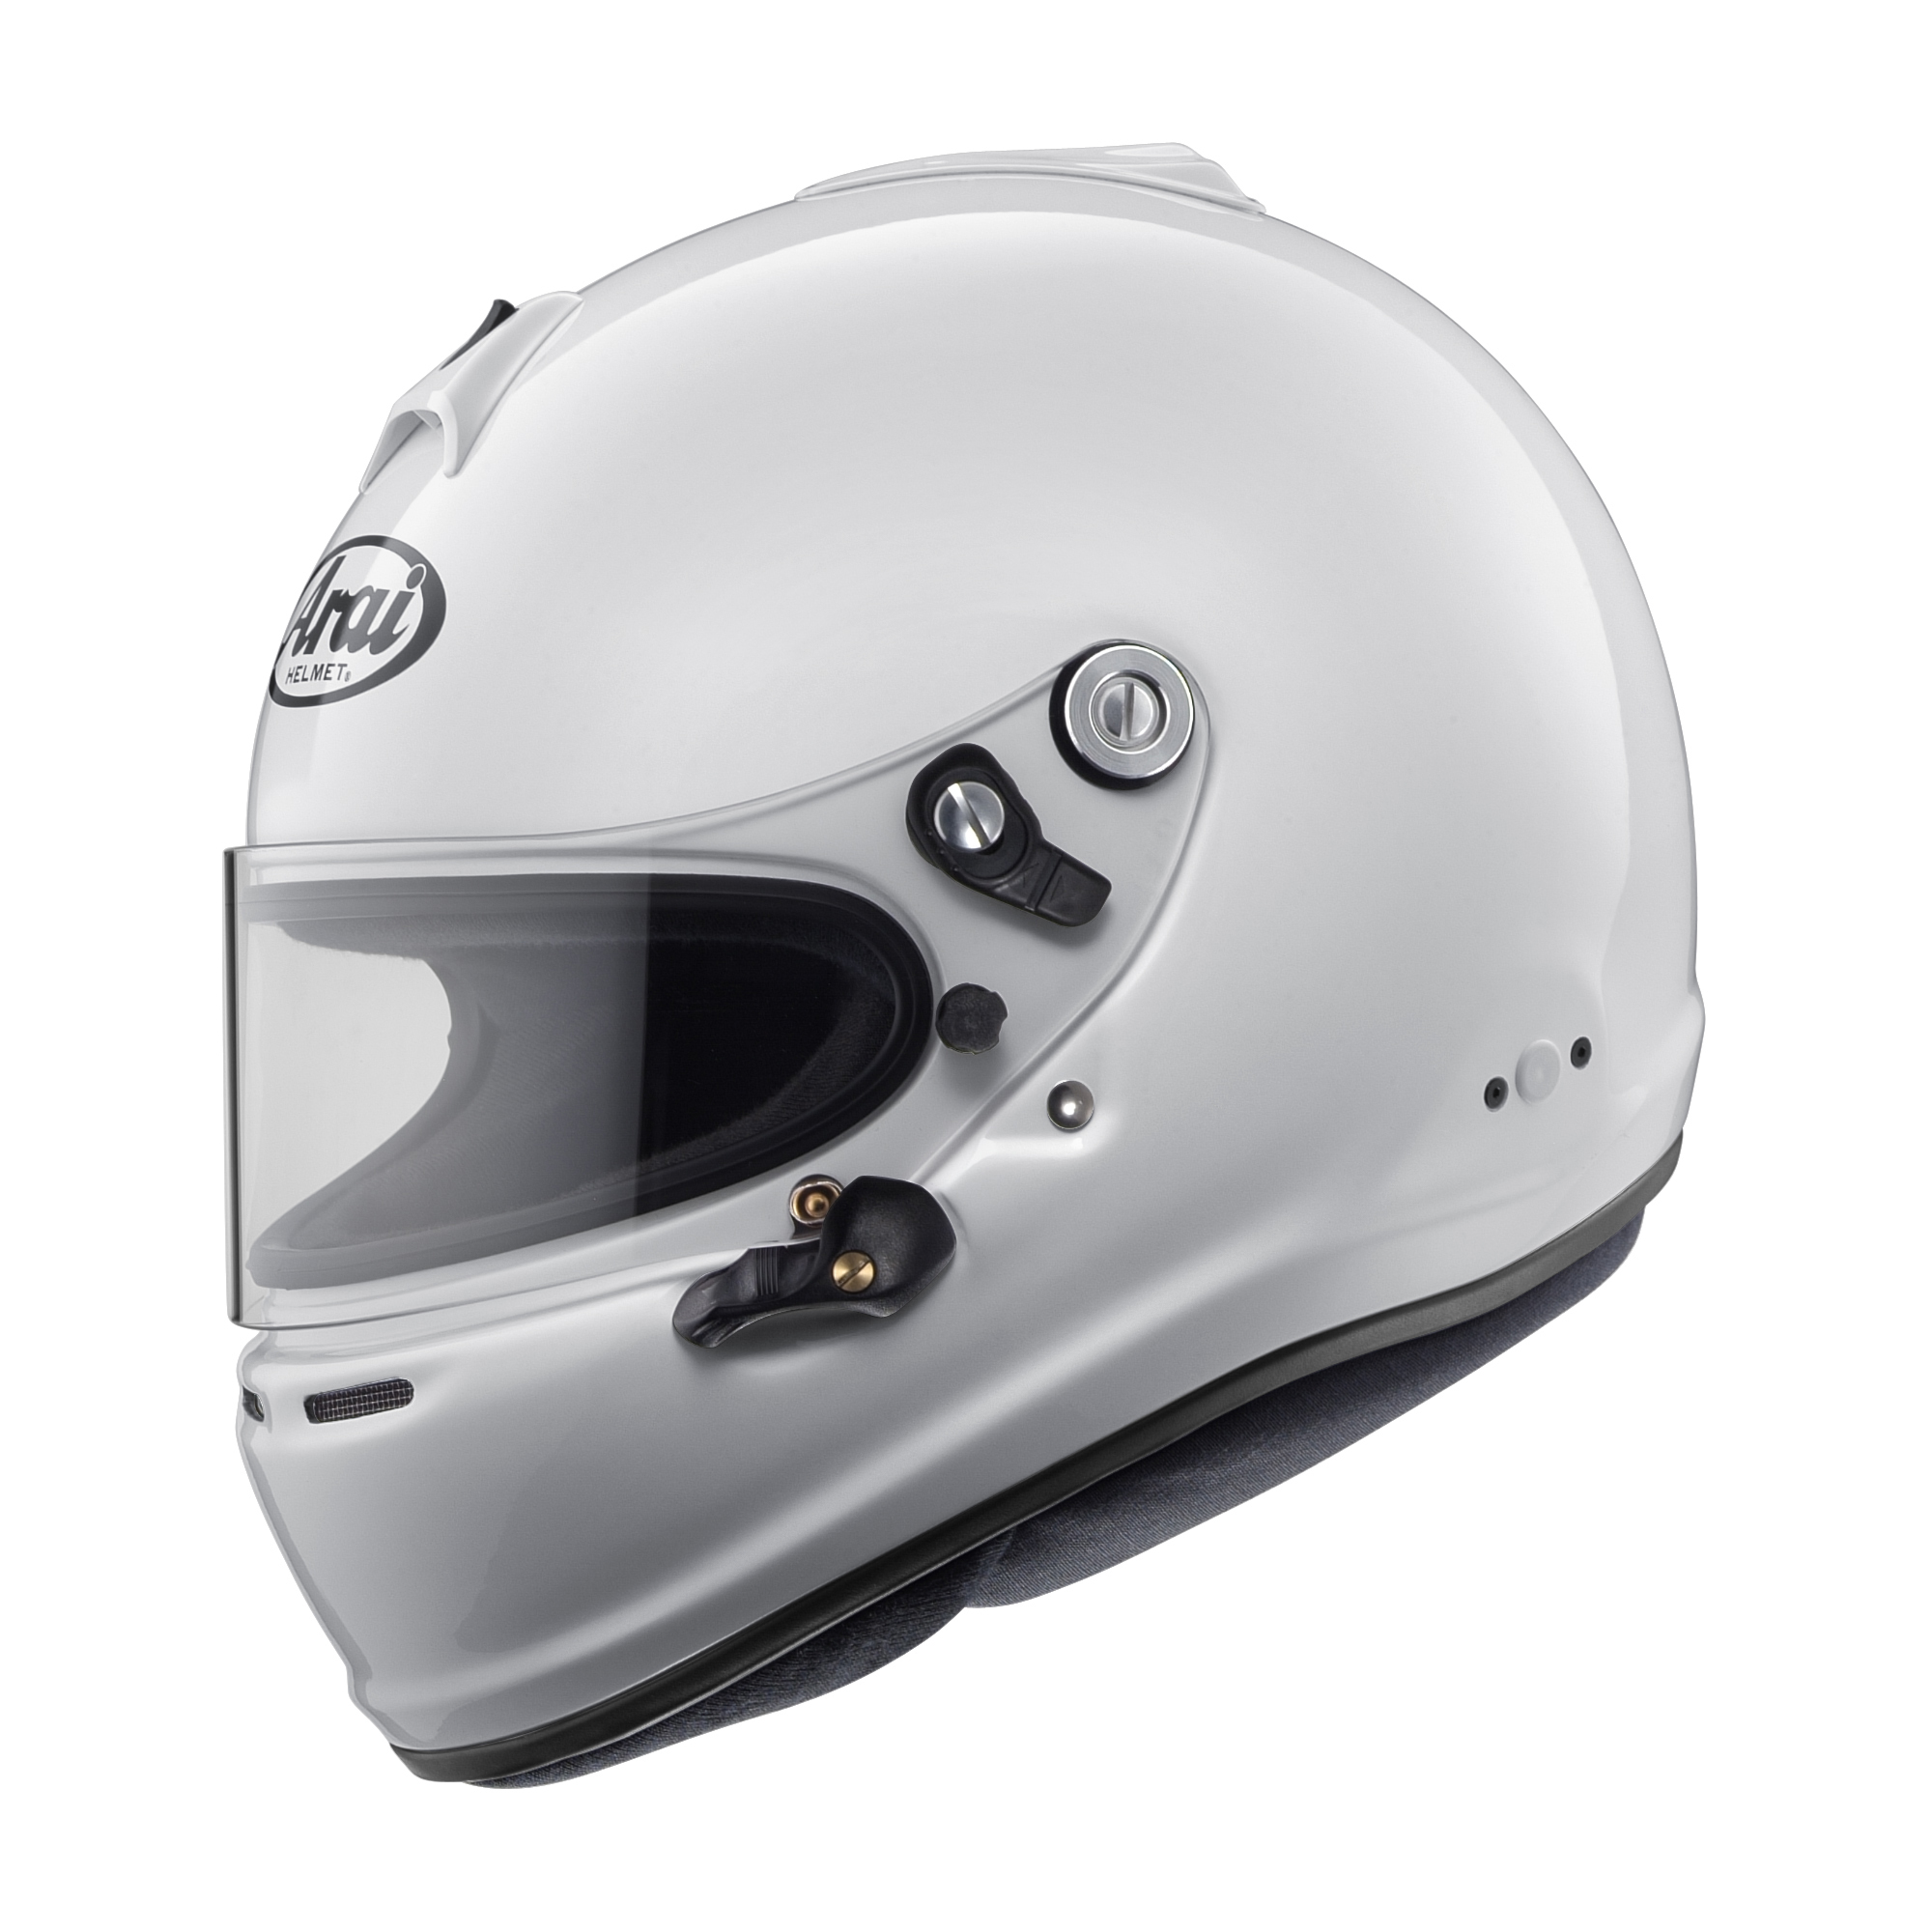 Arai Helmet 685311143440 Helmet, GP-6S, Snell SA2015, FIA Approved, Head and Neck Support Ready, White, Small, Each